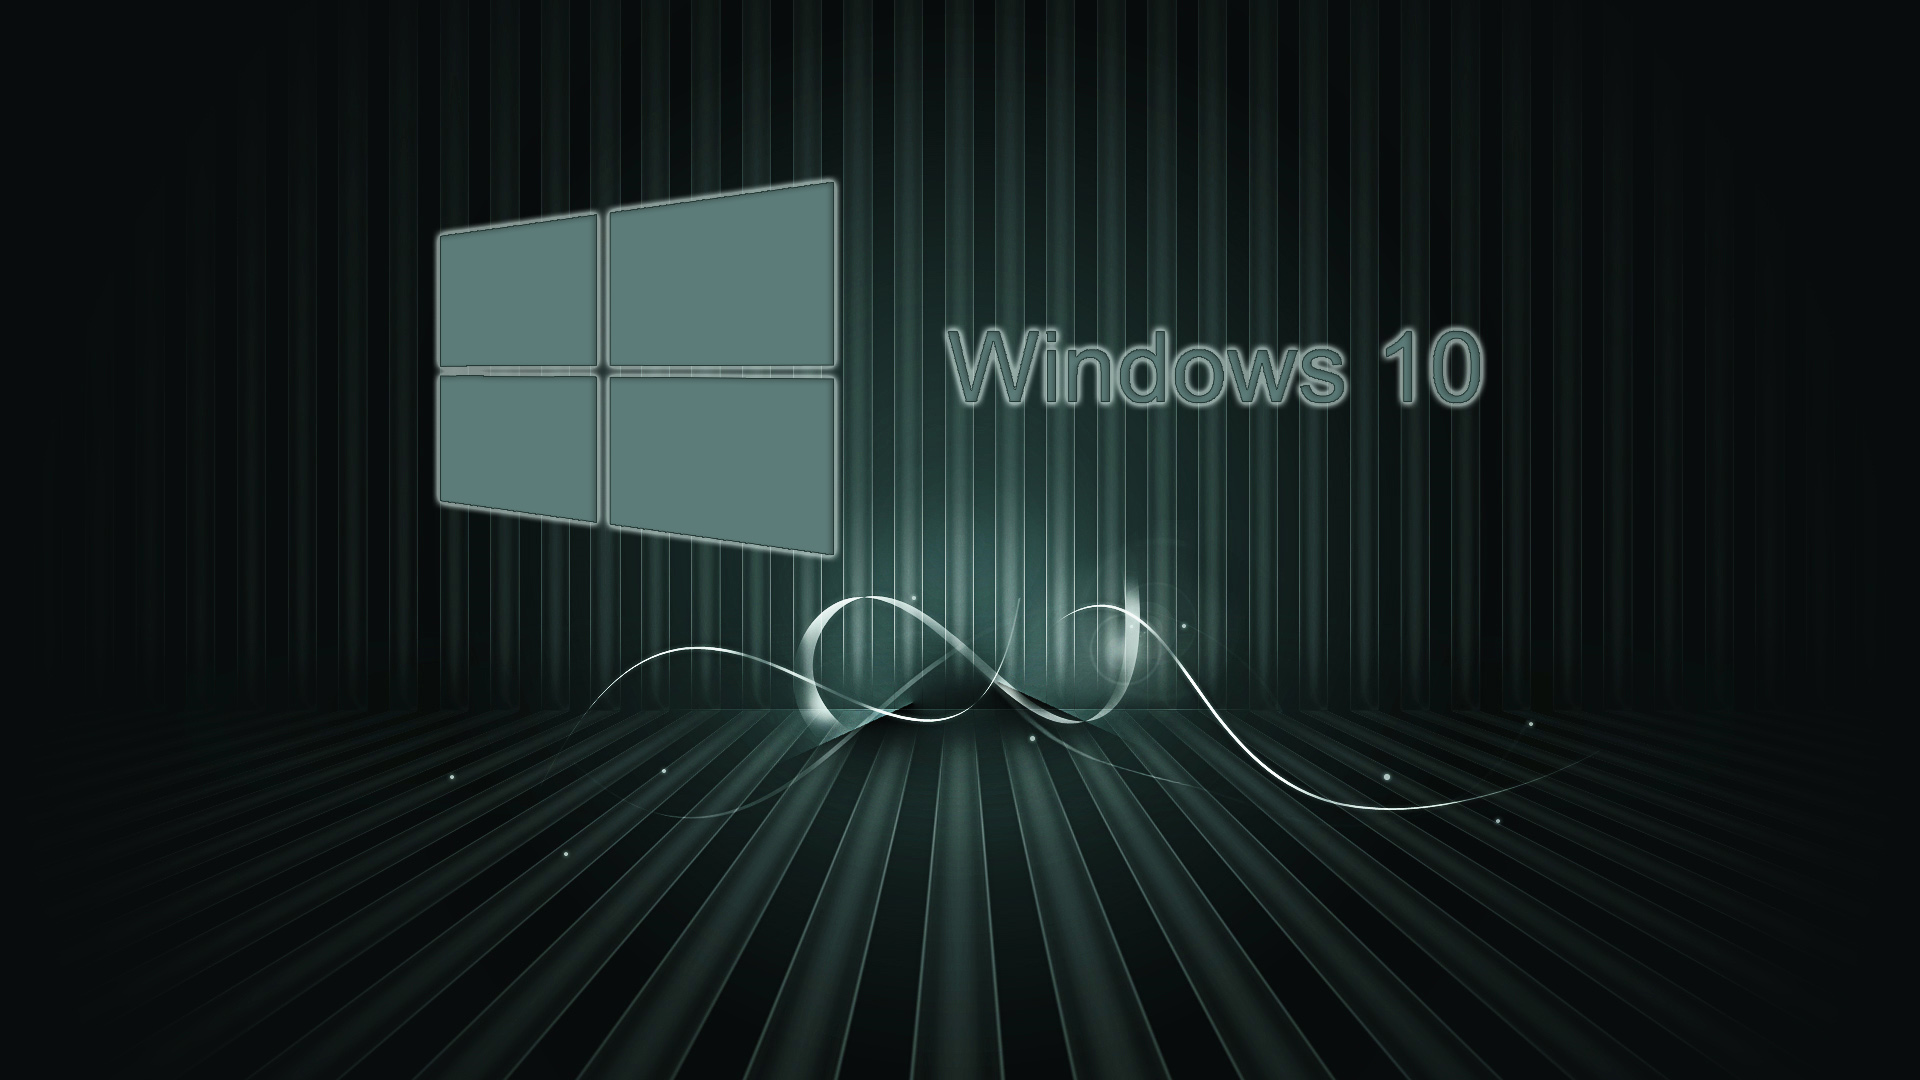 curve windows 10 wallpaper windows 10 logo hd 1920x1080